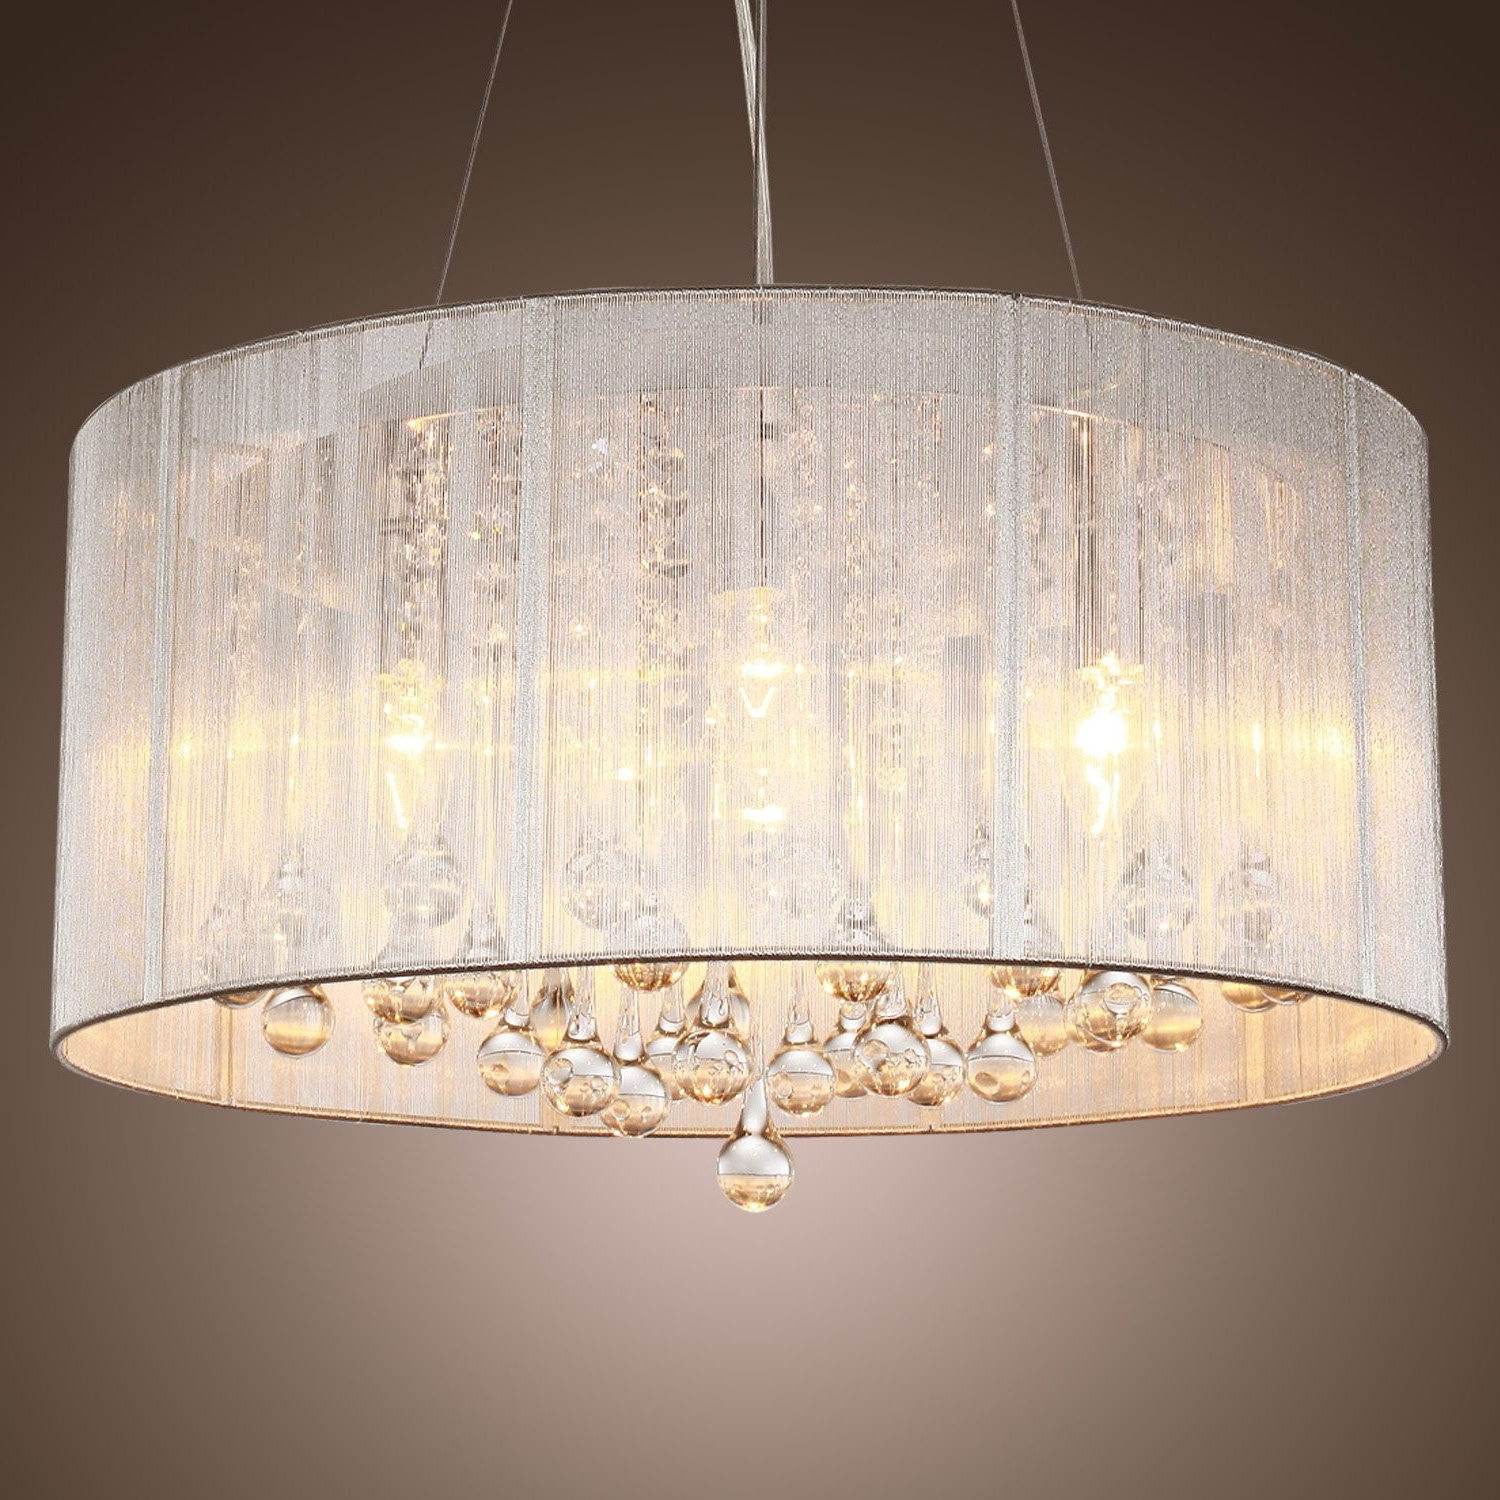 Drum Lamp Shades For Chandeliers In Recent Chandelier With Drum Shade – Espan (View 5 of 20)